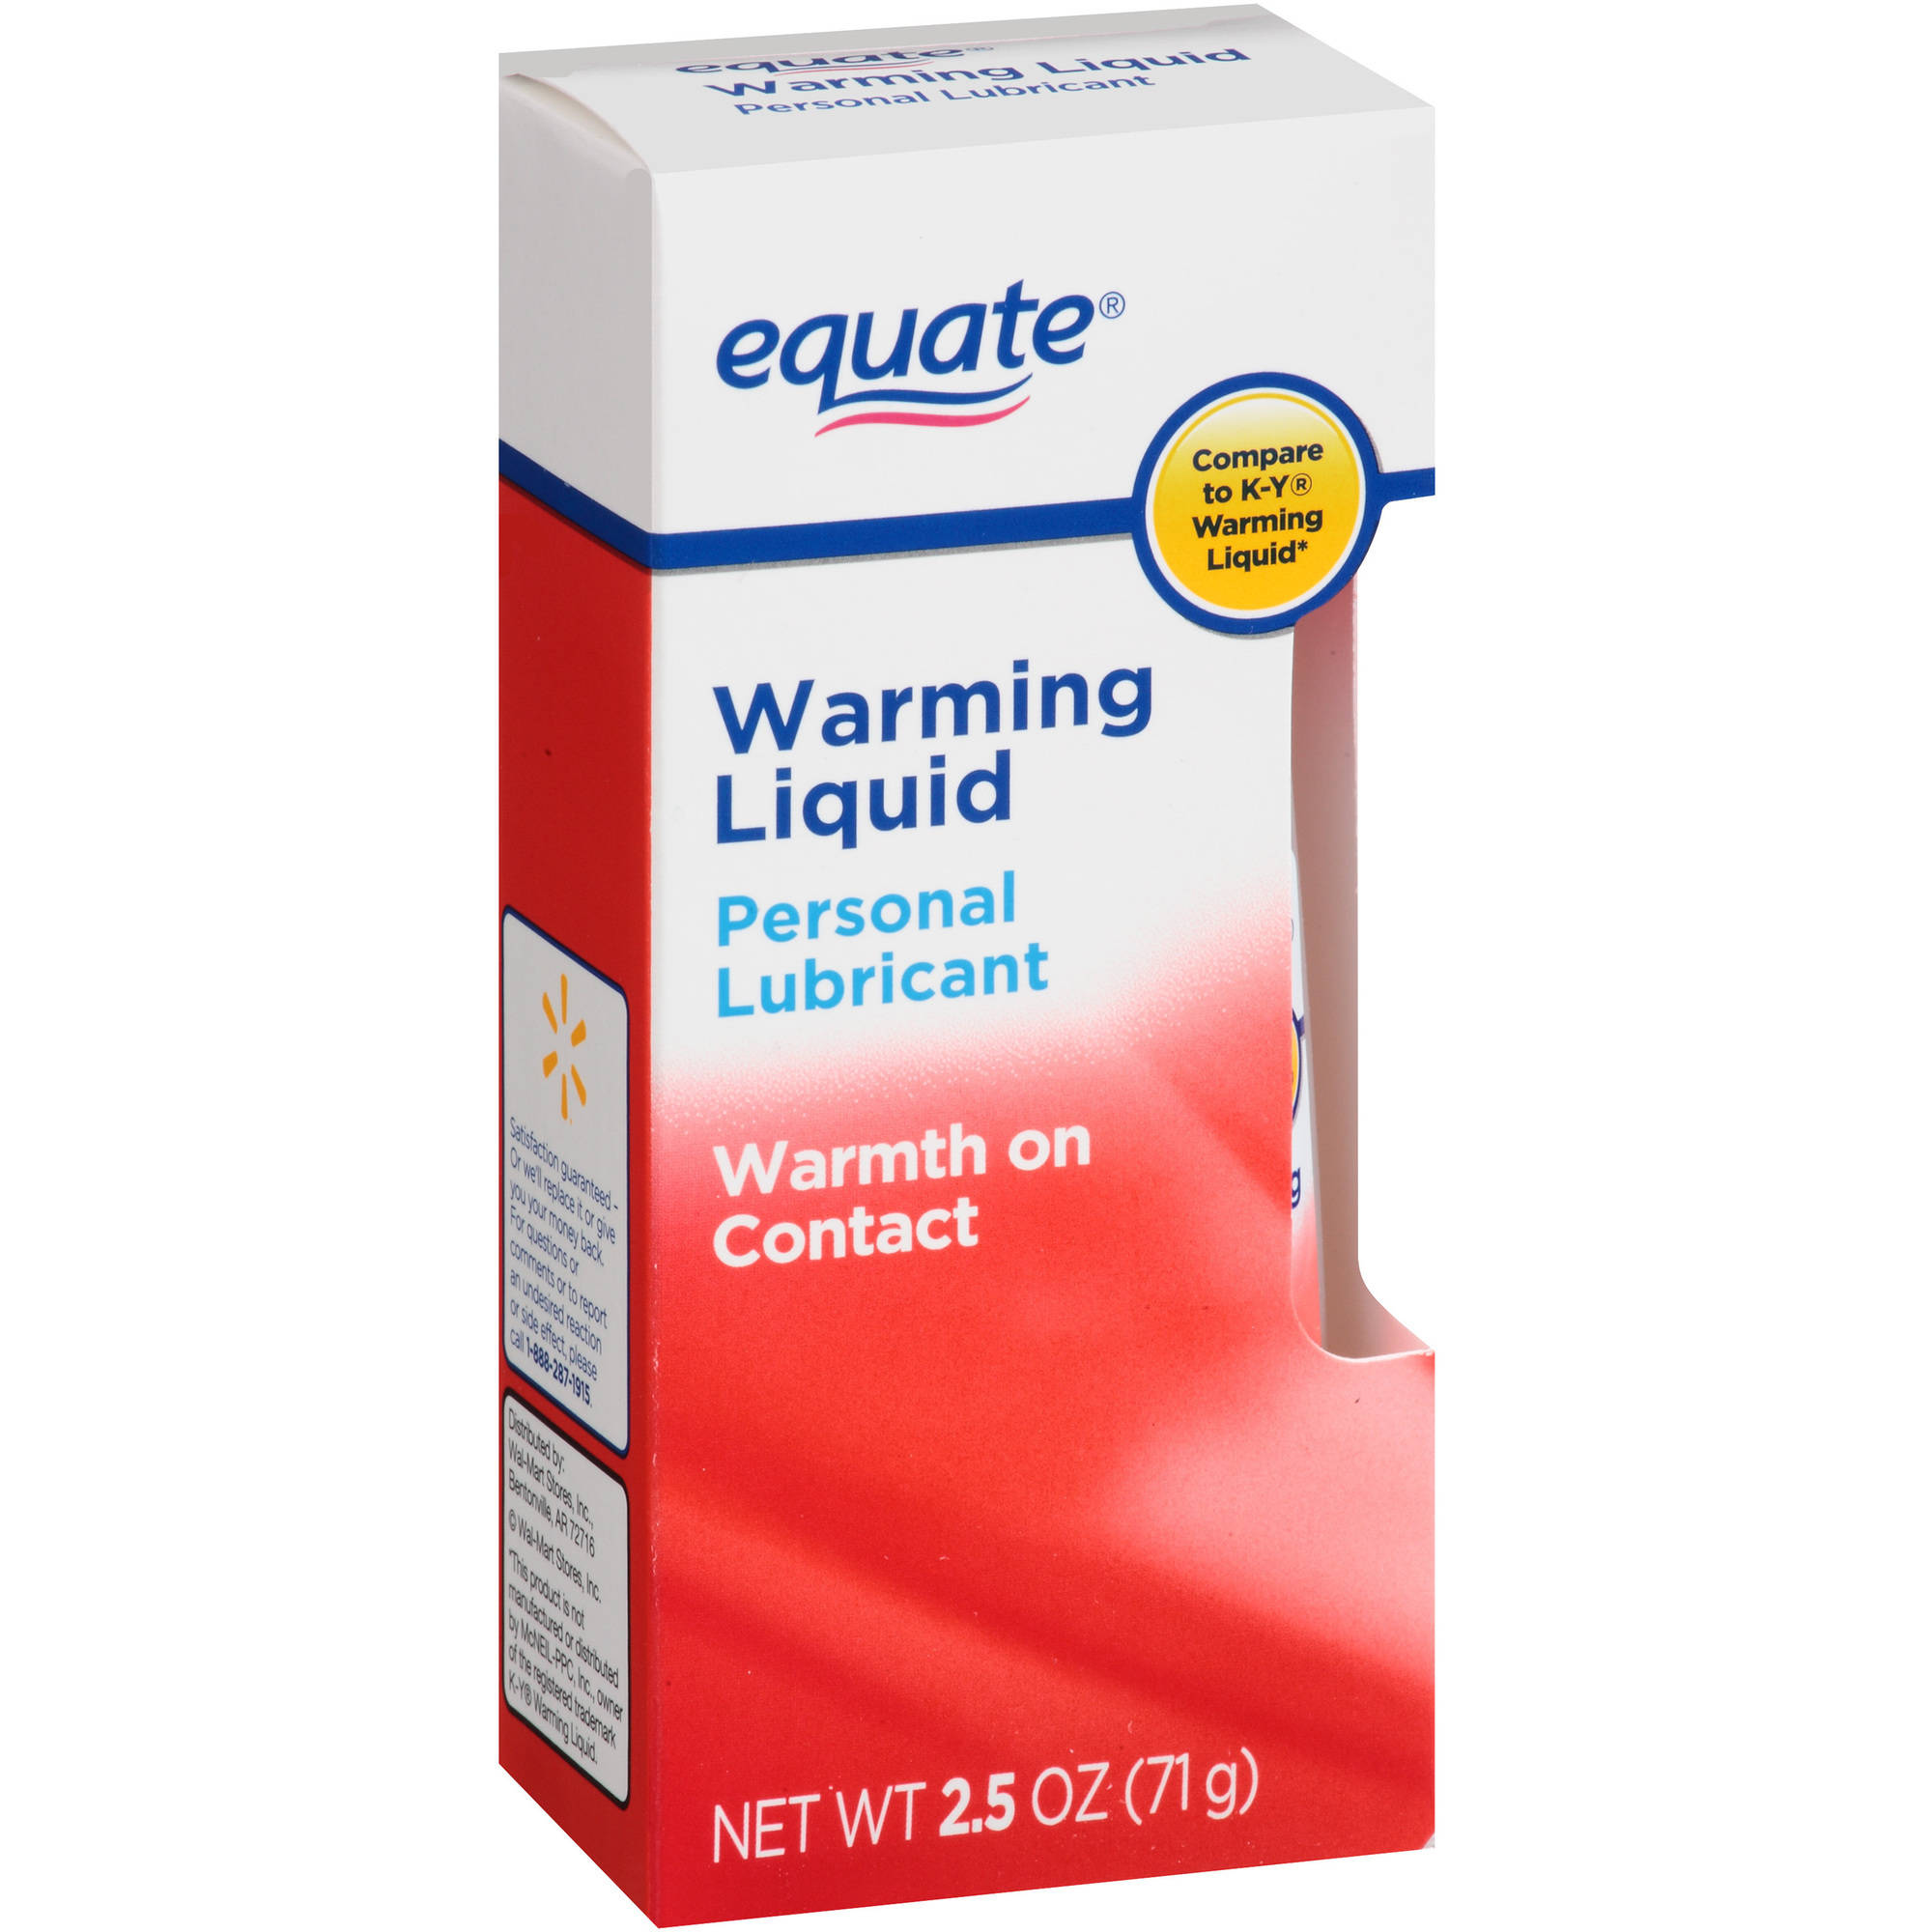 Equate Warming Liquid Personal Lubricant, 2.5 oz